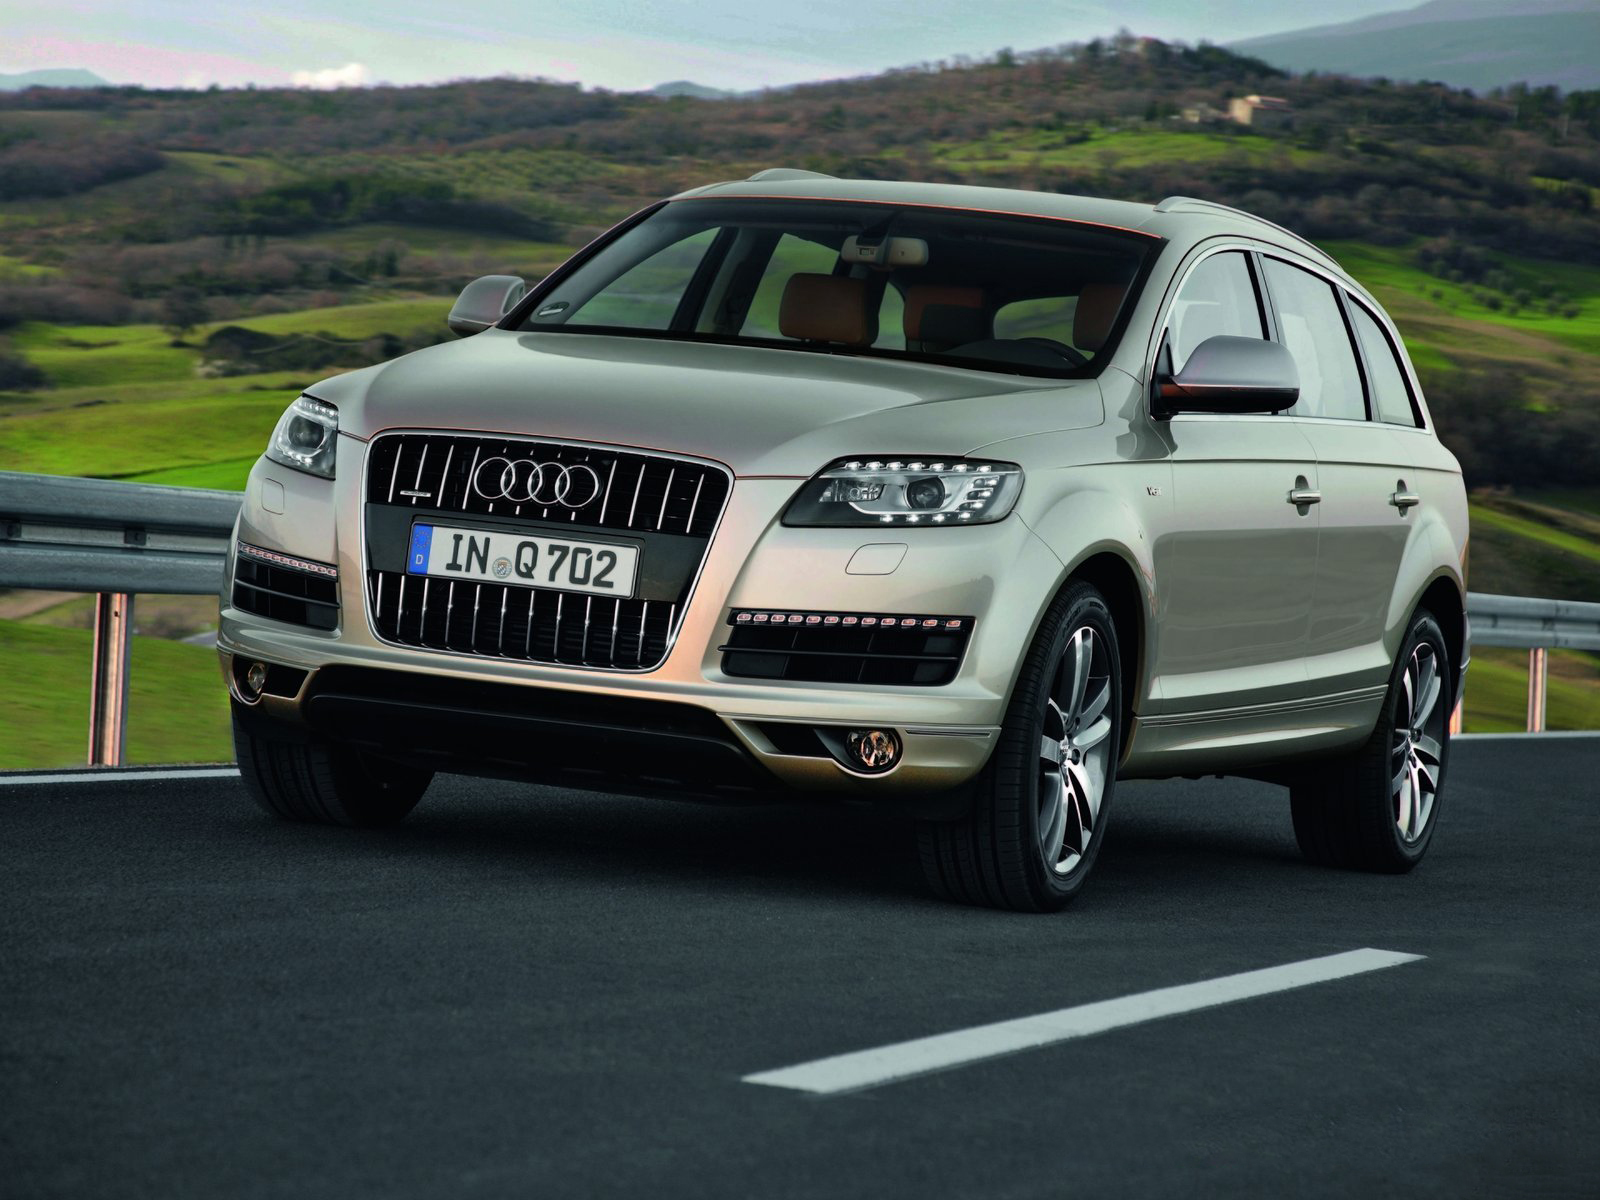 The audi q7 is a full size luxury crossover suv unveiled in september 2005 at the frankfurt motor show production of the q7 began in autumn of 2005 at the